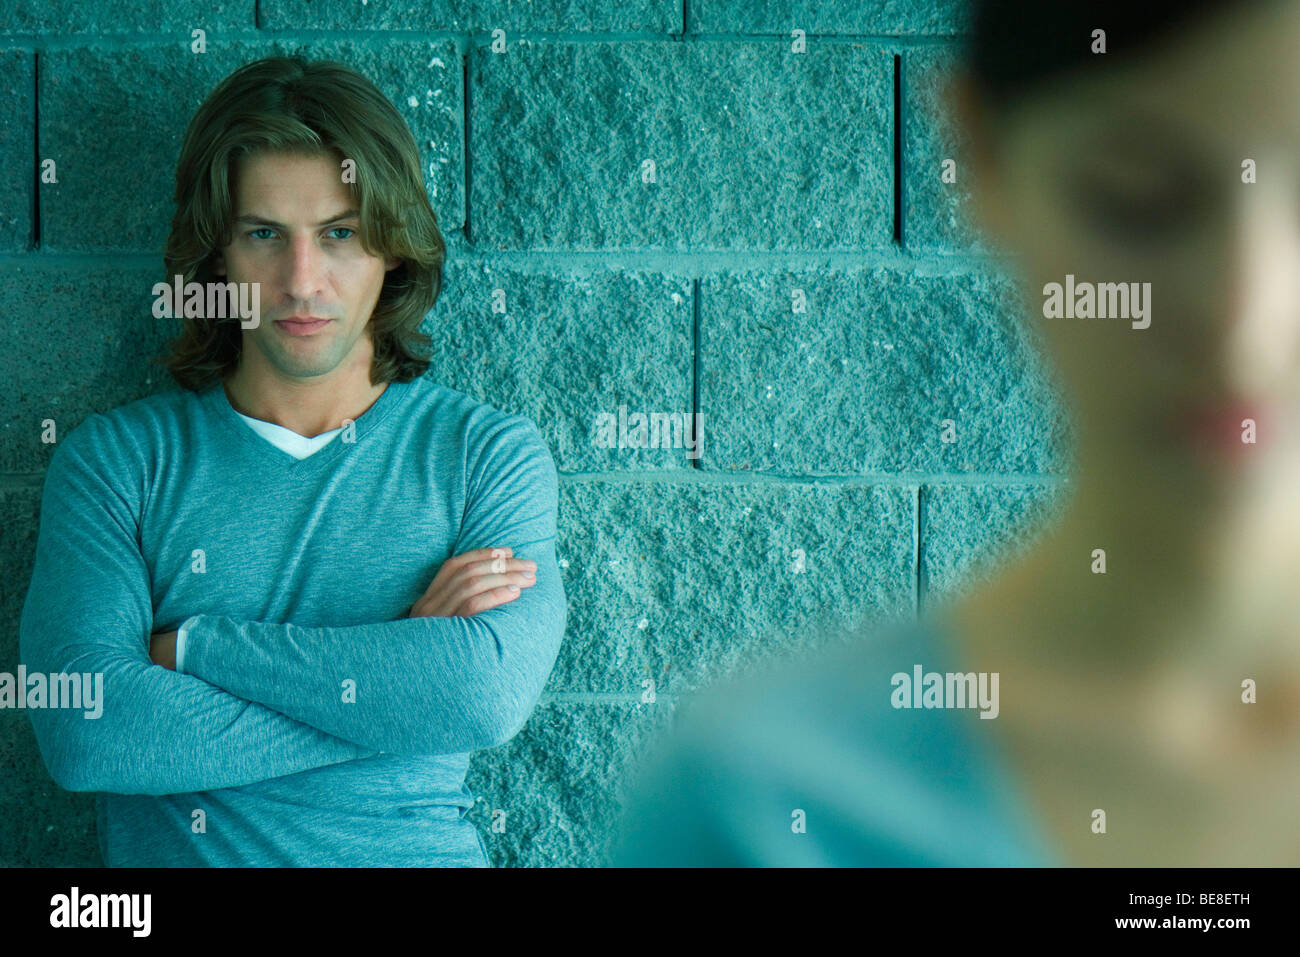 Man with folded arms and sullen expression looking at woman in foreground - Stock Image